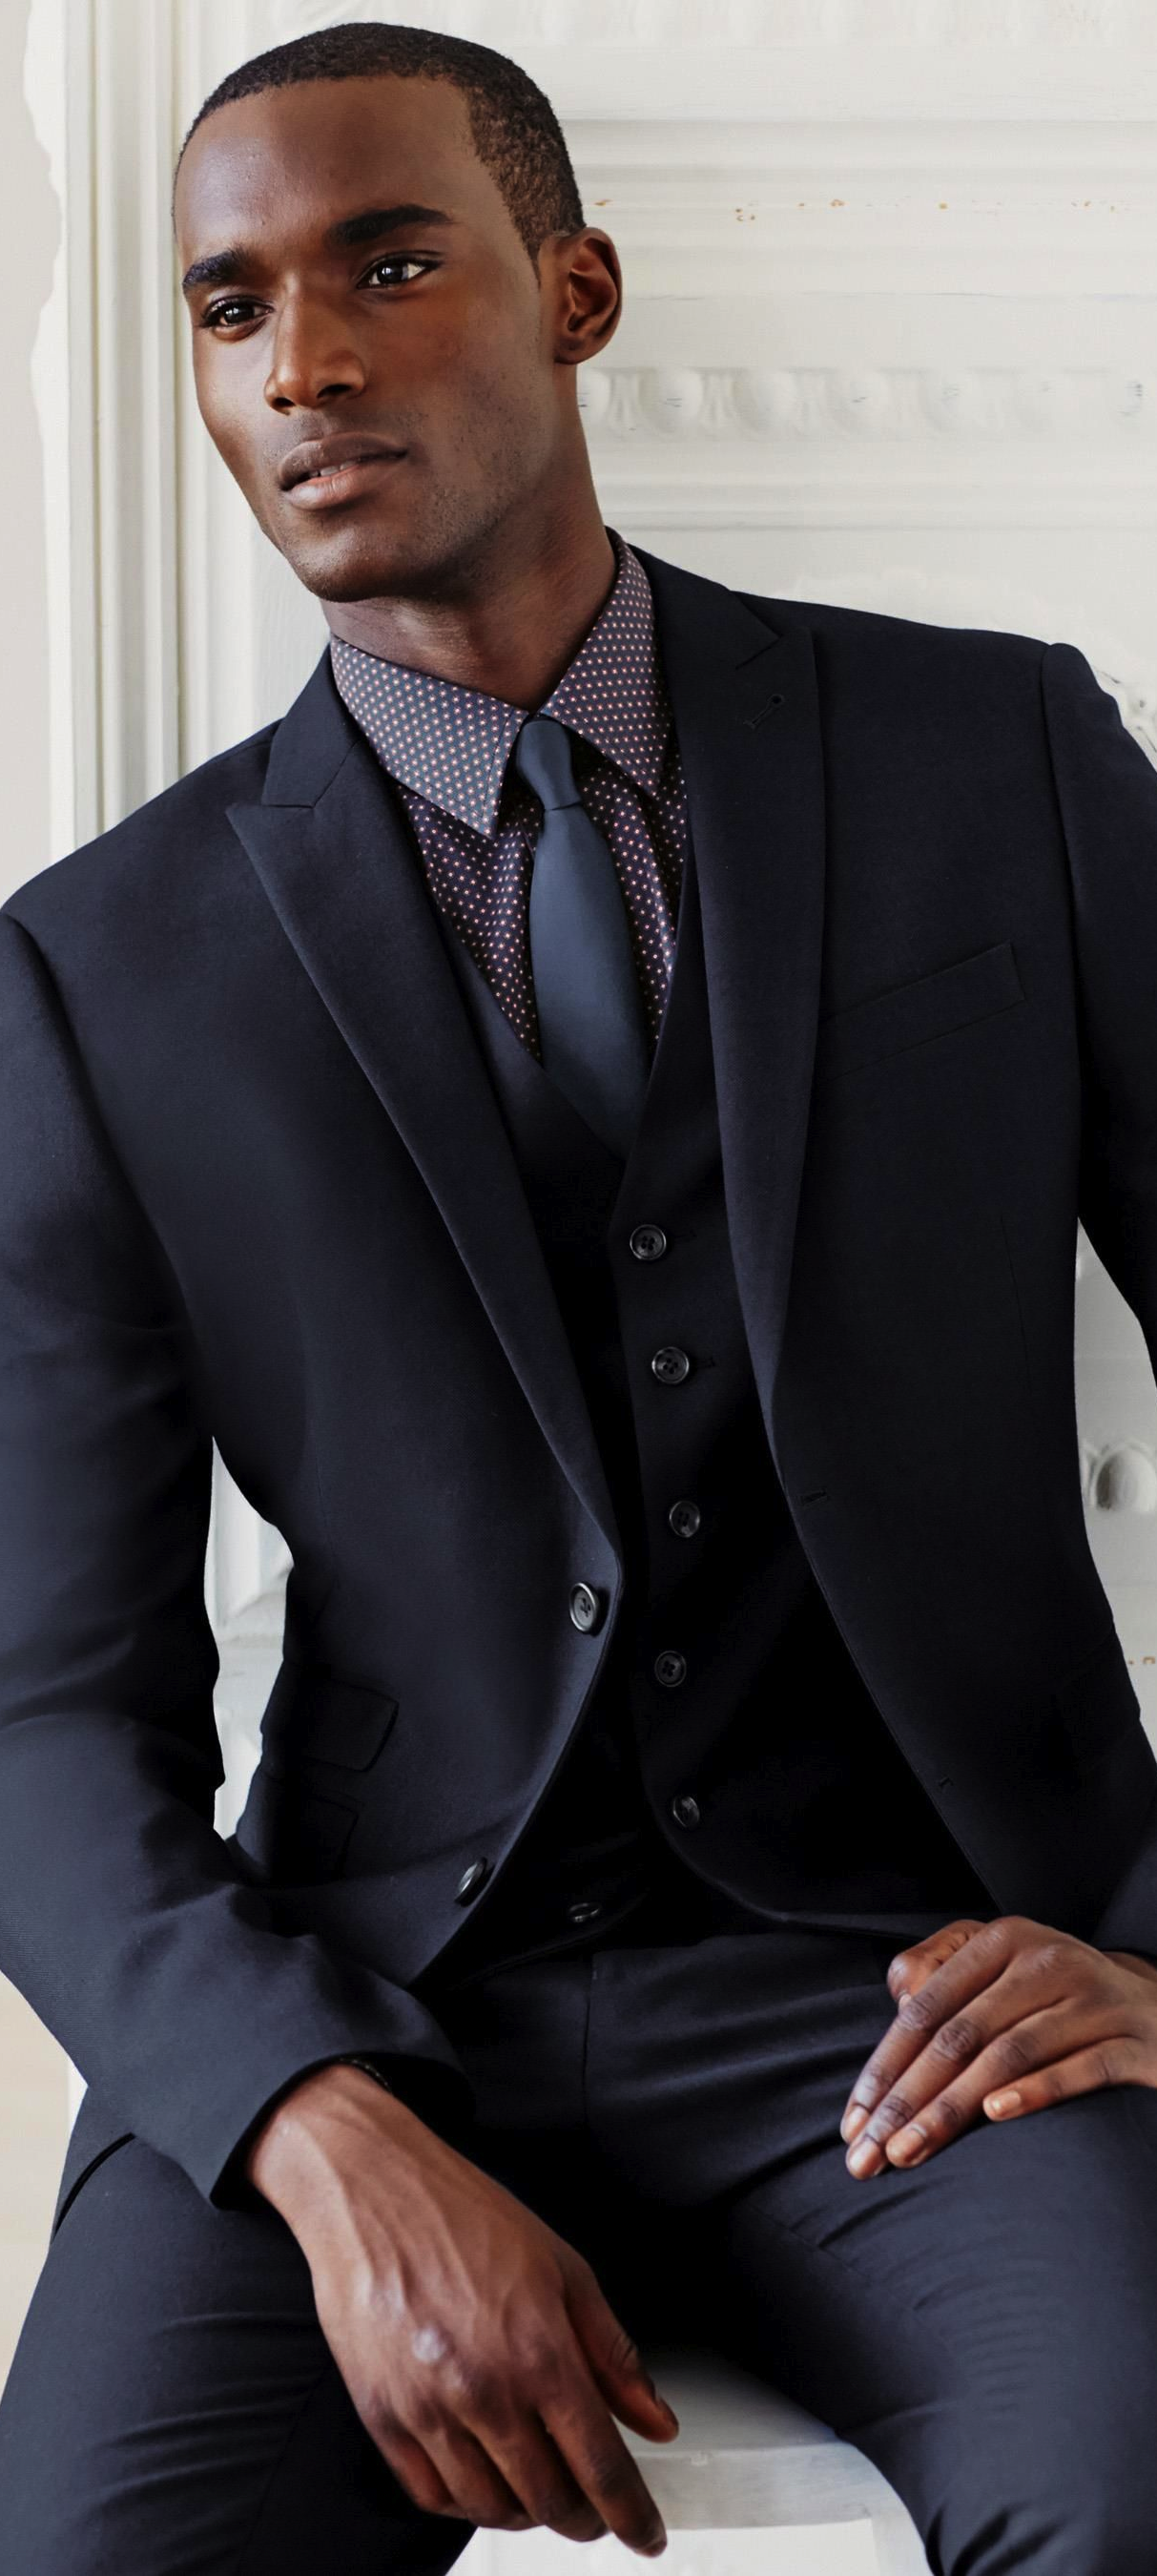 Suit up: Navy is the new black | Geek Swag | Pinterest ...